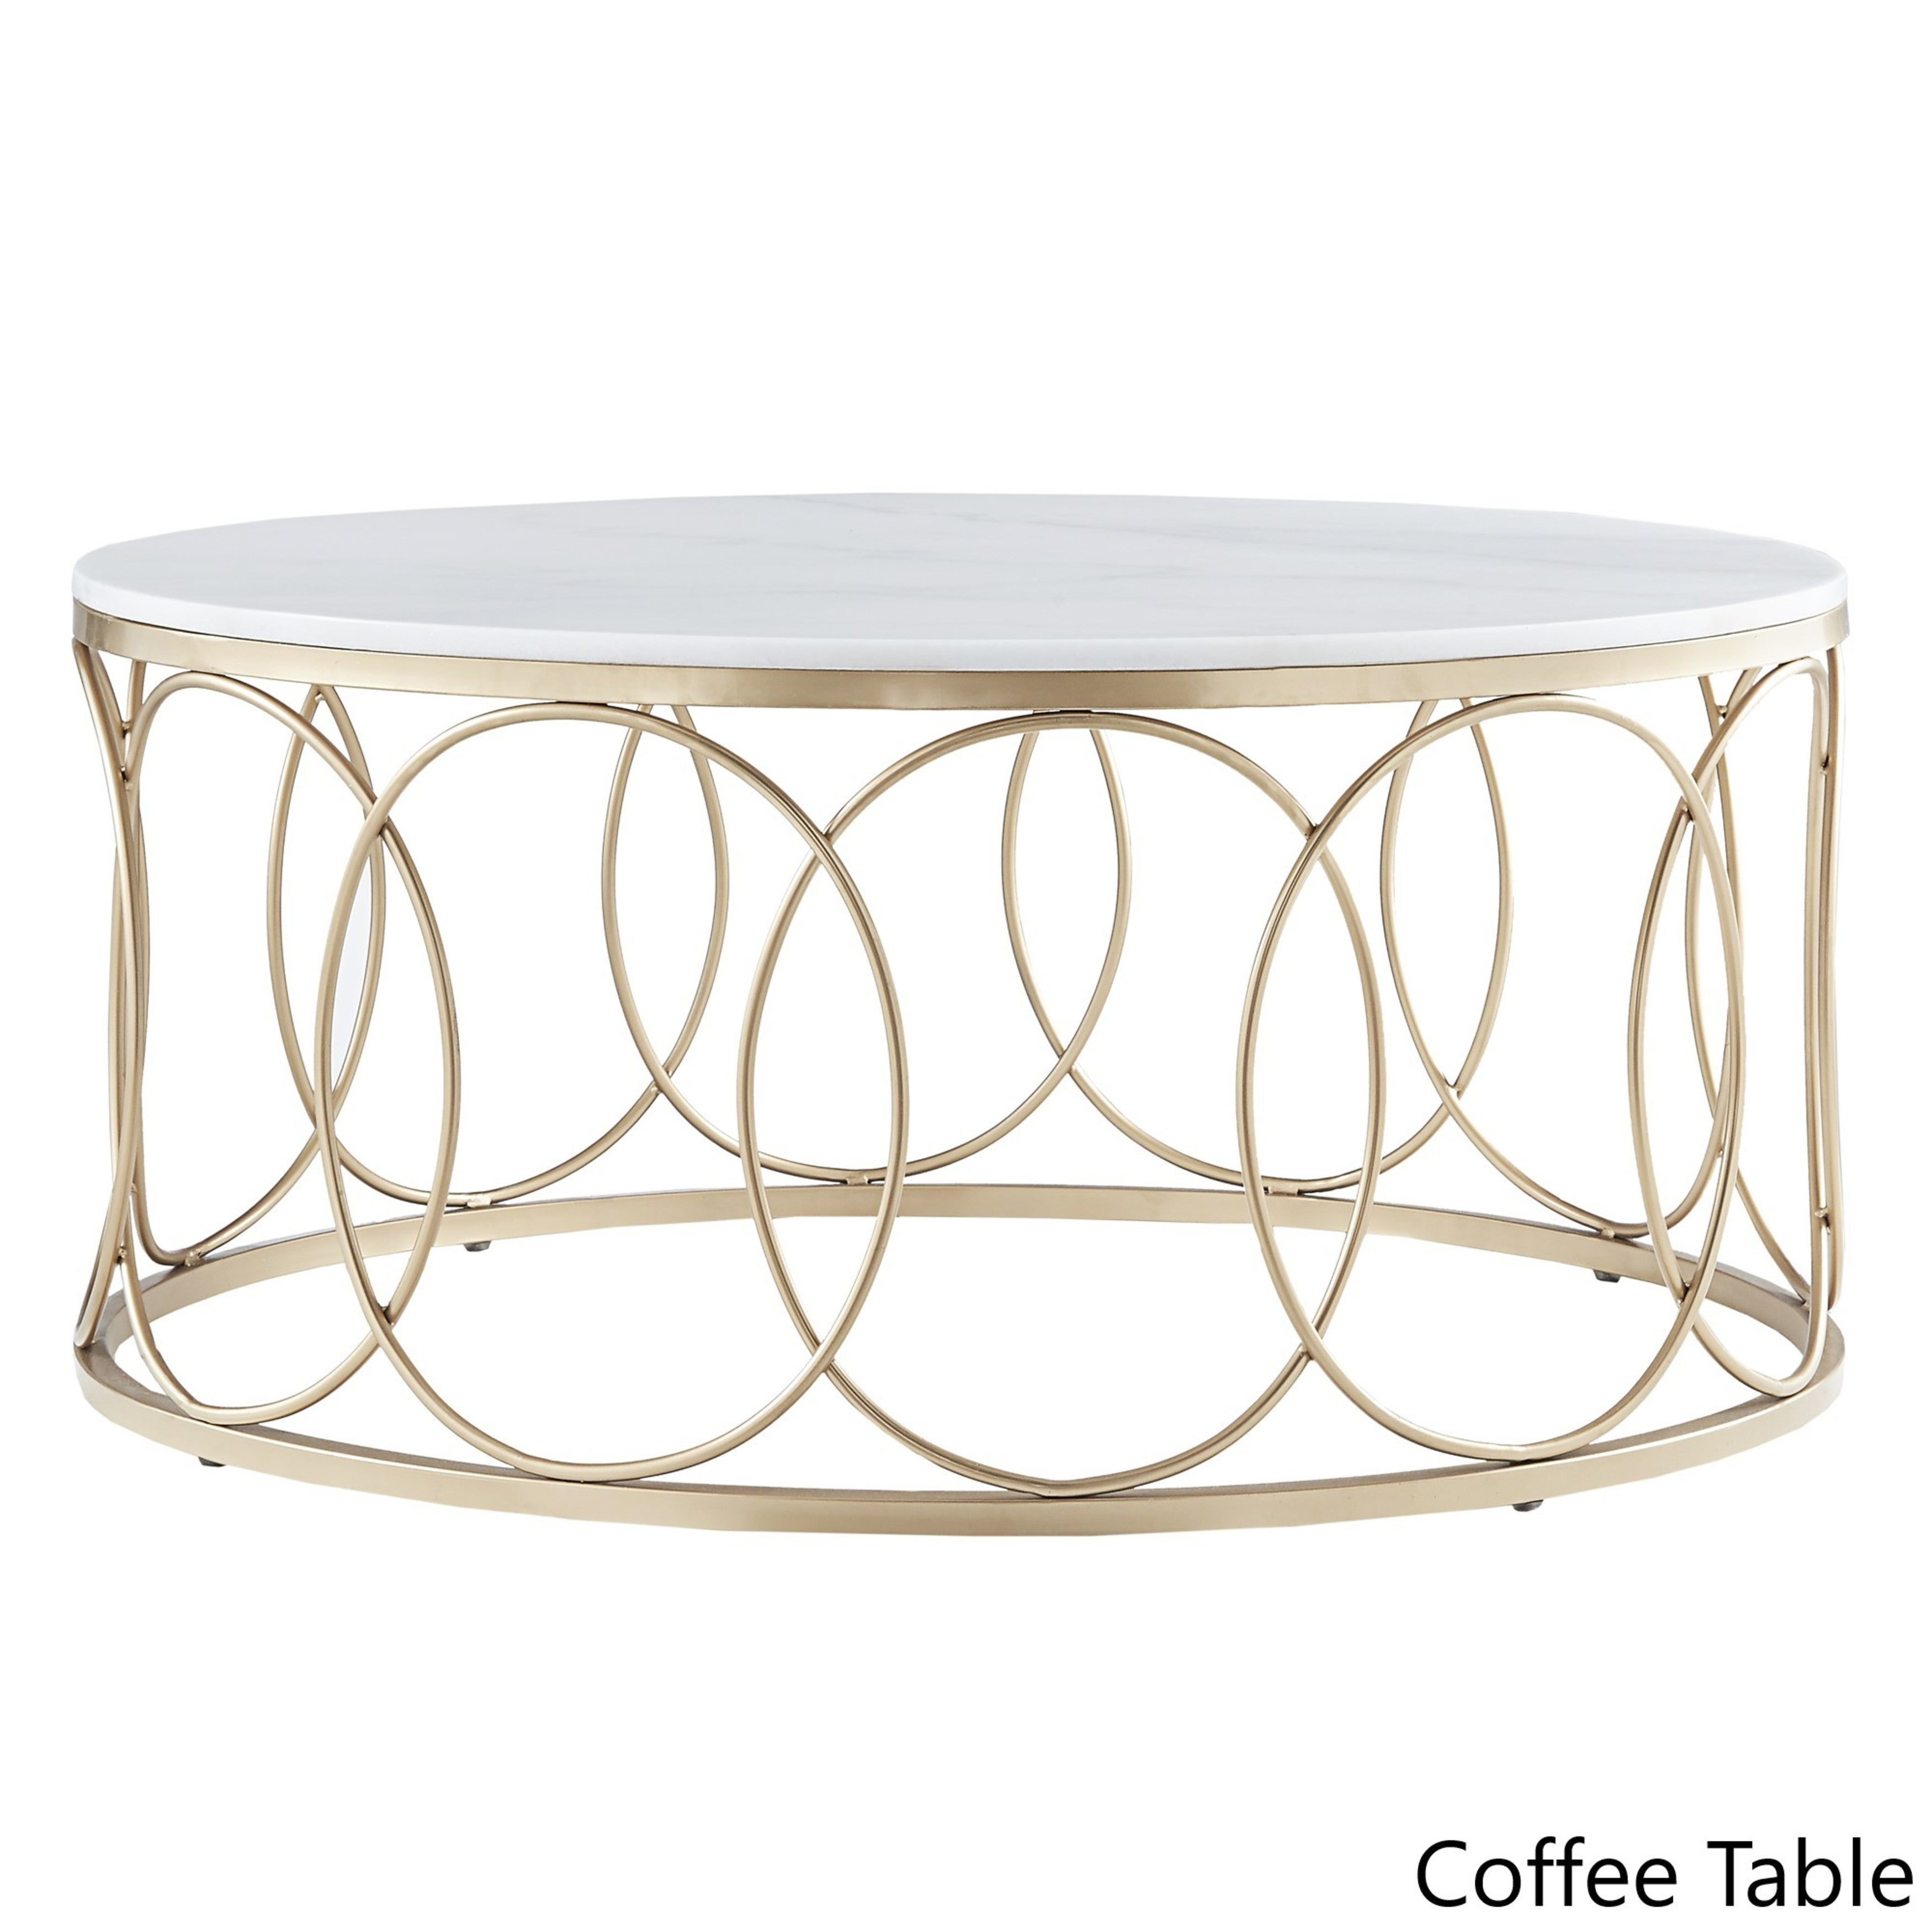 Lynn Round Gold Accent Tables with Marble Tops by iNSPIRE Q Bold - Free  Shipping Today - Overstock.com - 24156991